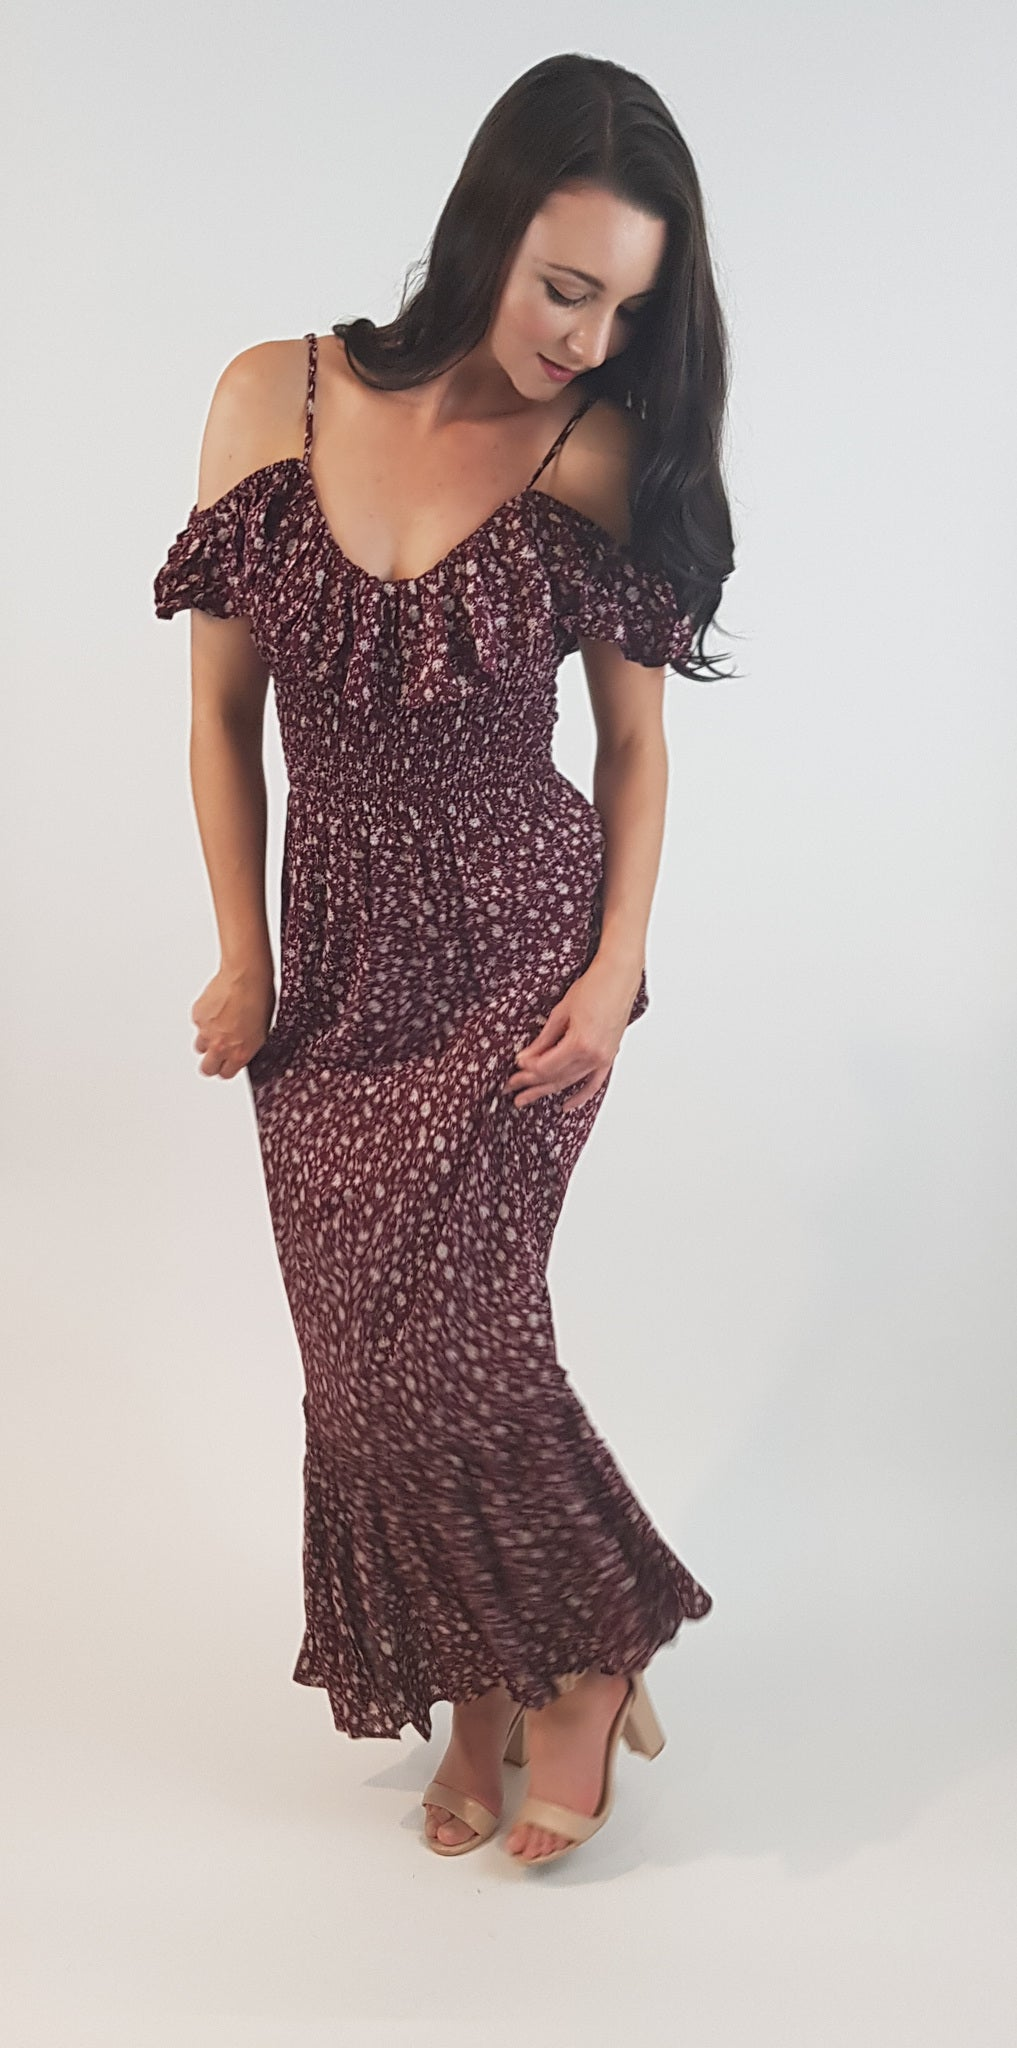 havana nights only size s left april and maisy